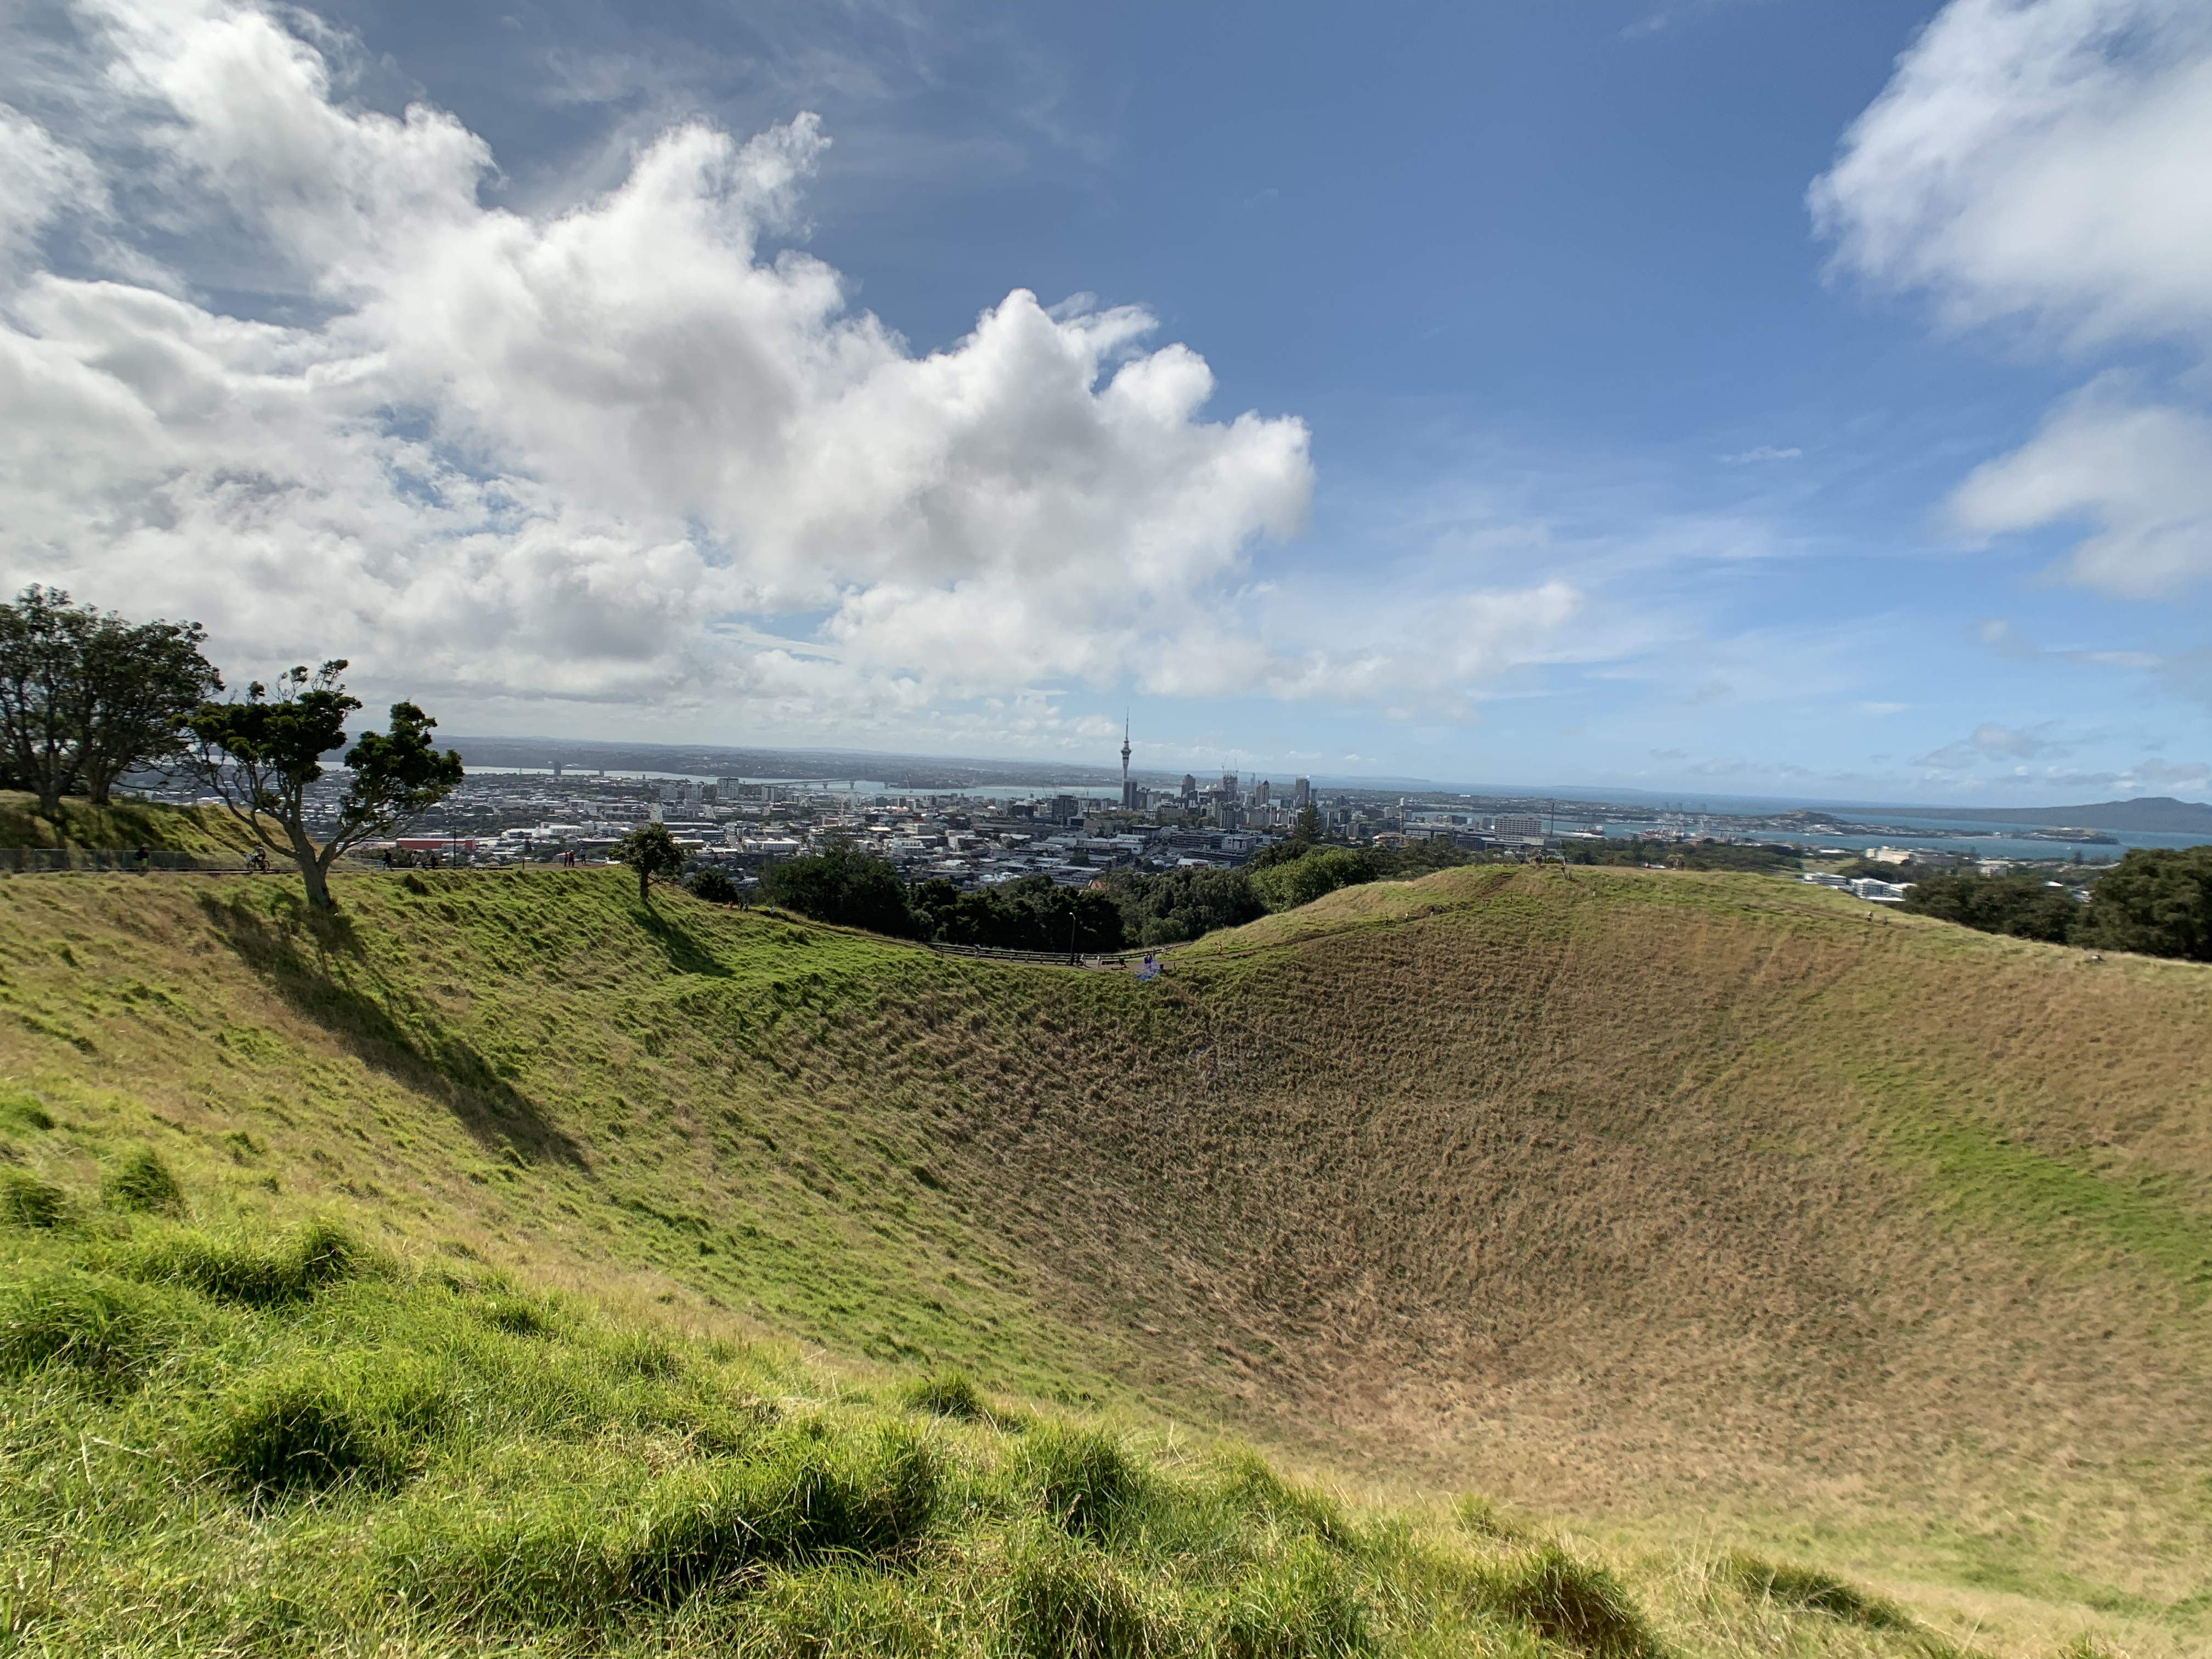 Mount Eden is an old volcanic peak in Auckland, New Zealand.